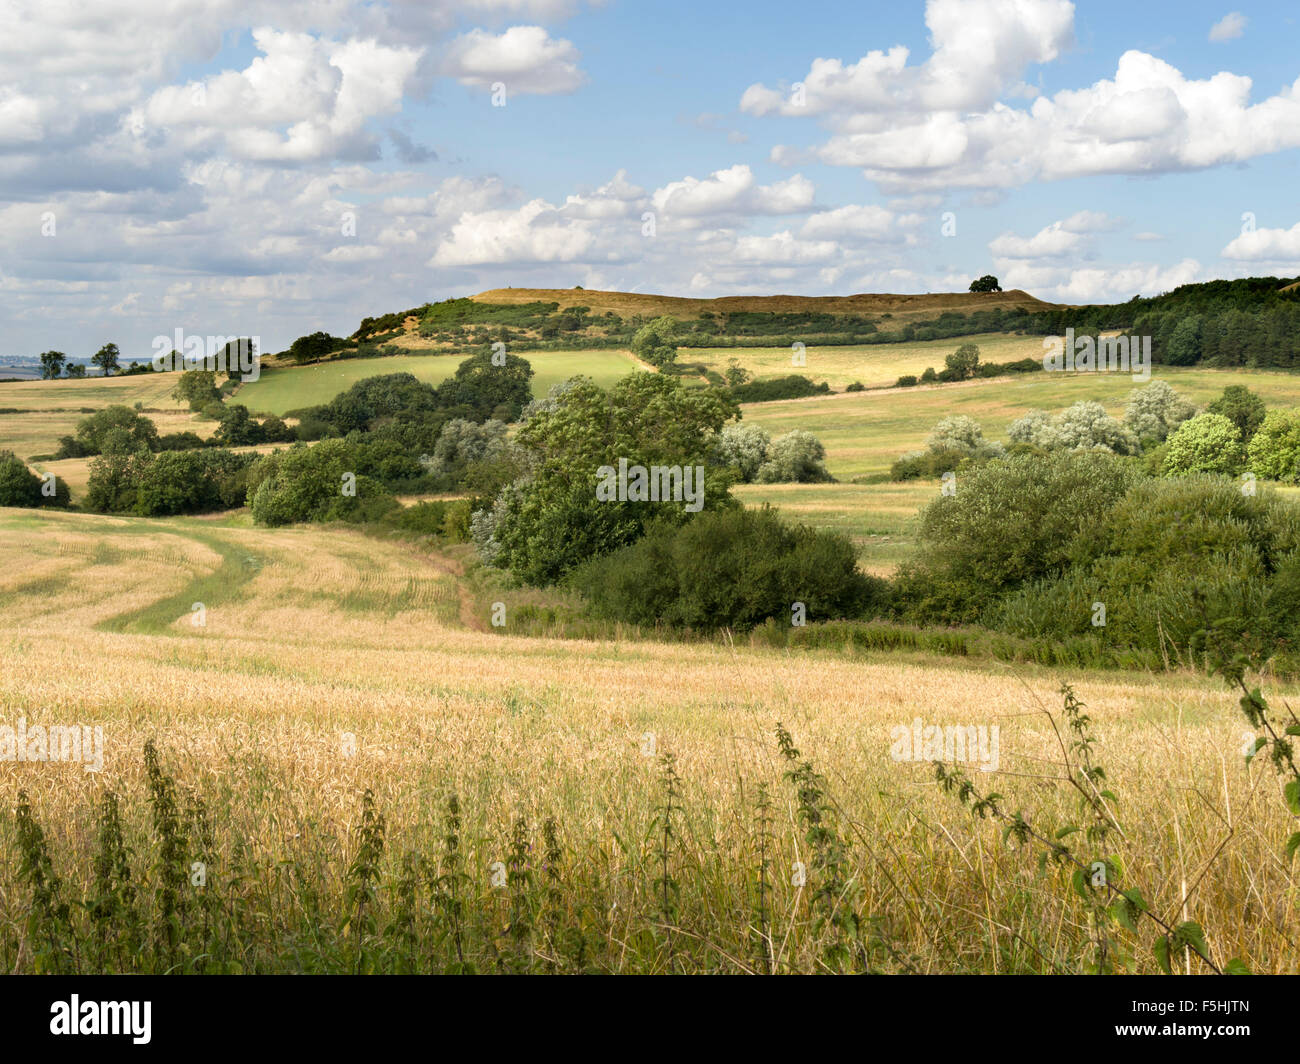 Burrough Hill Iron Age Hill Fort seen across cornfields, Leicestershire, England, UK. - Stock Image